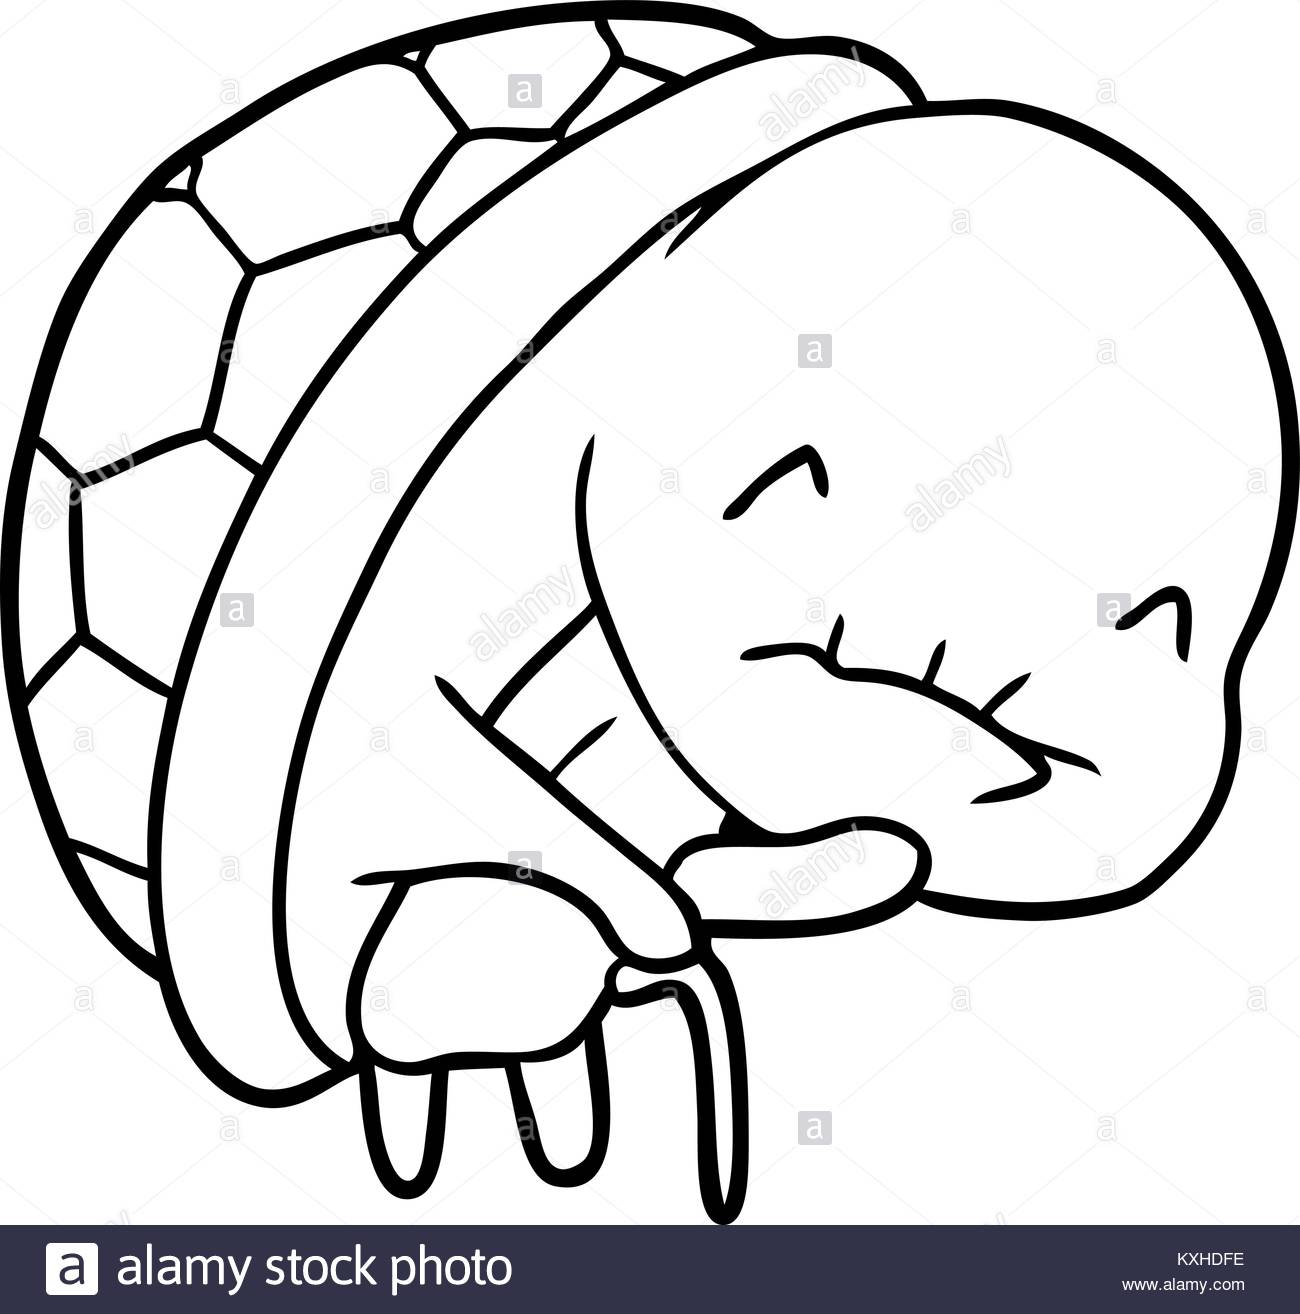 1300x1314 Turtle Drawing Stock Photos Amp Turtle Drawing Stock Images